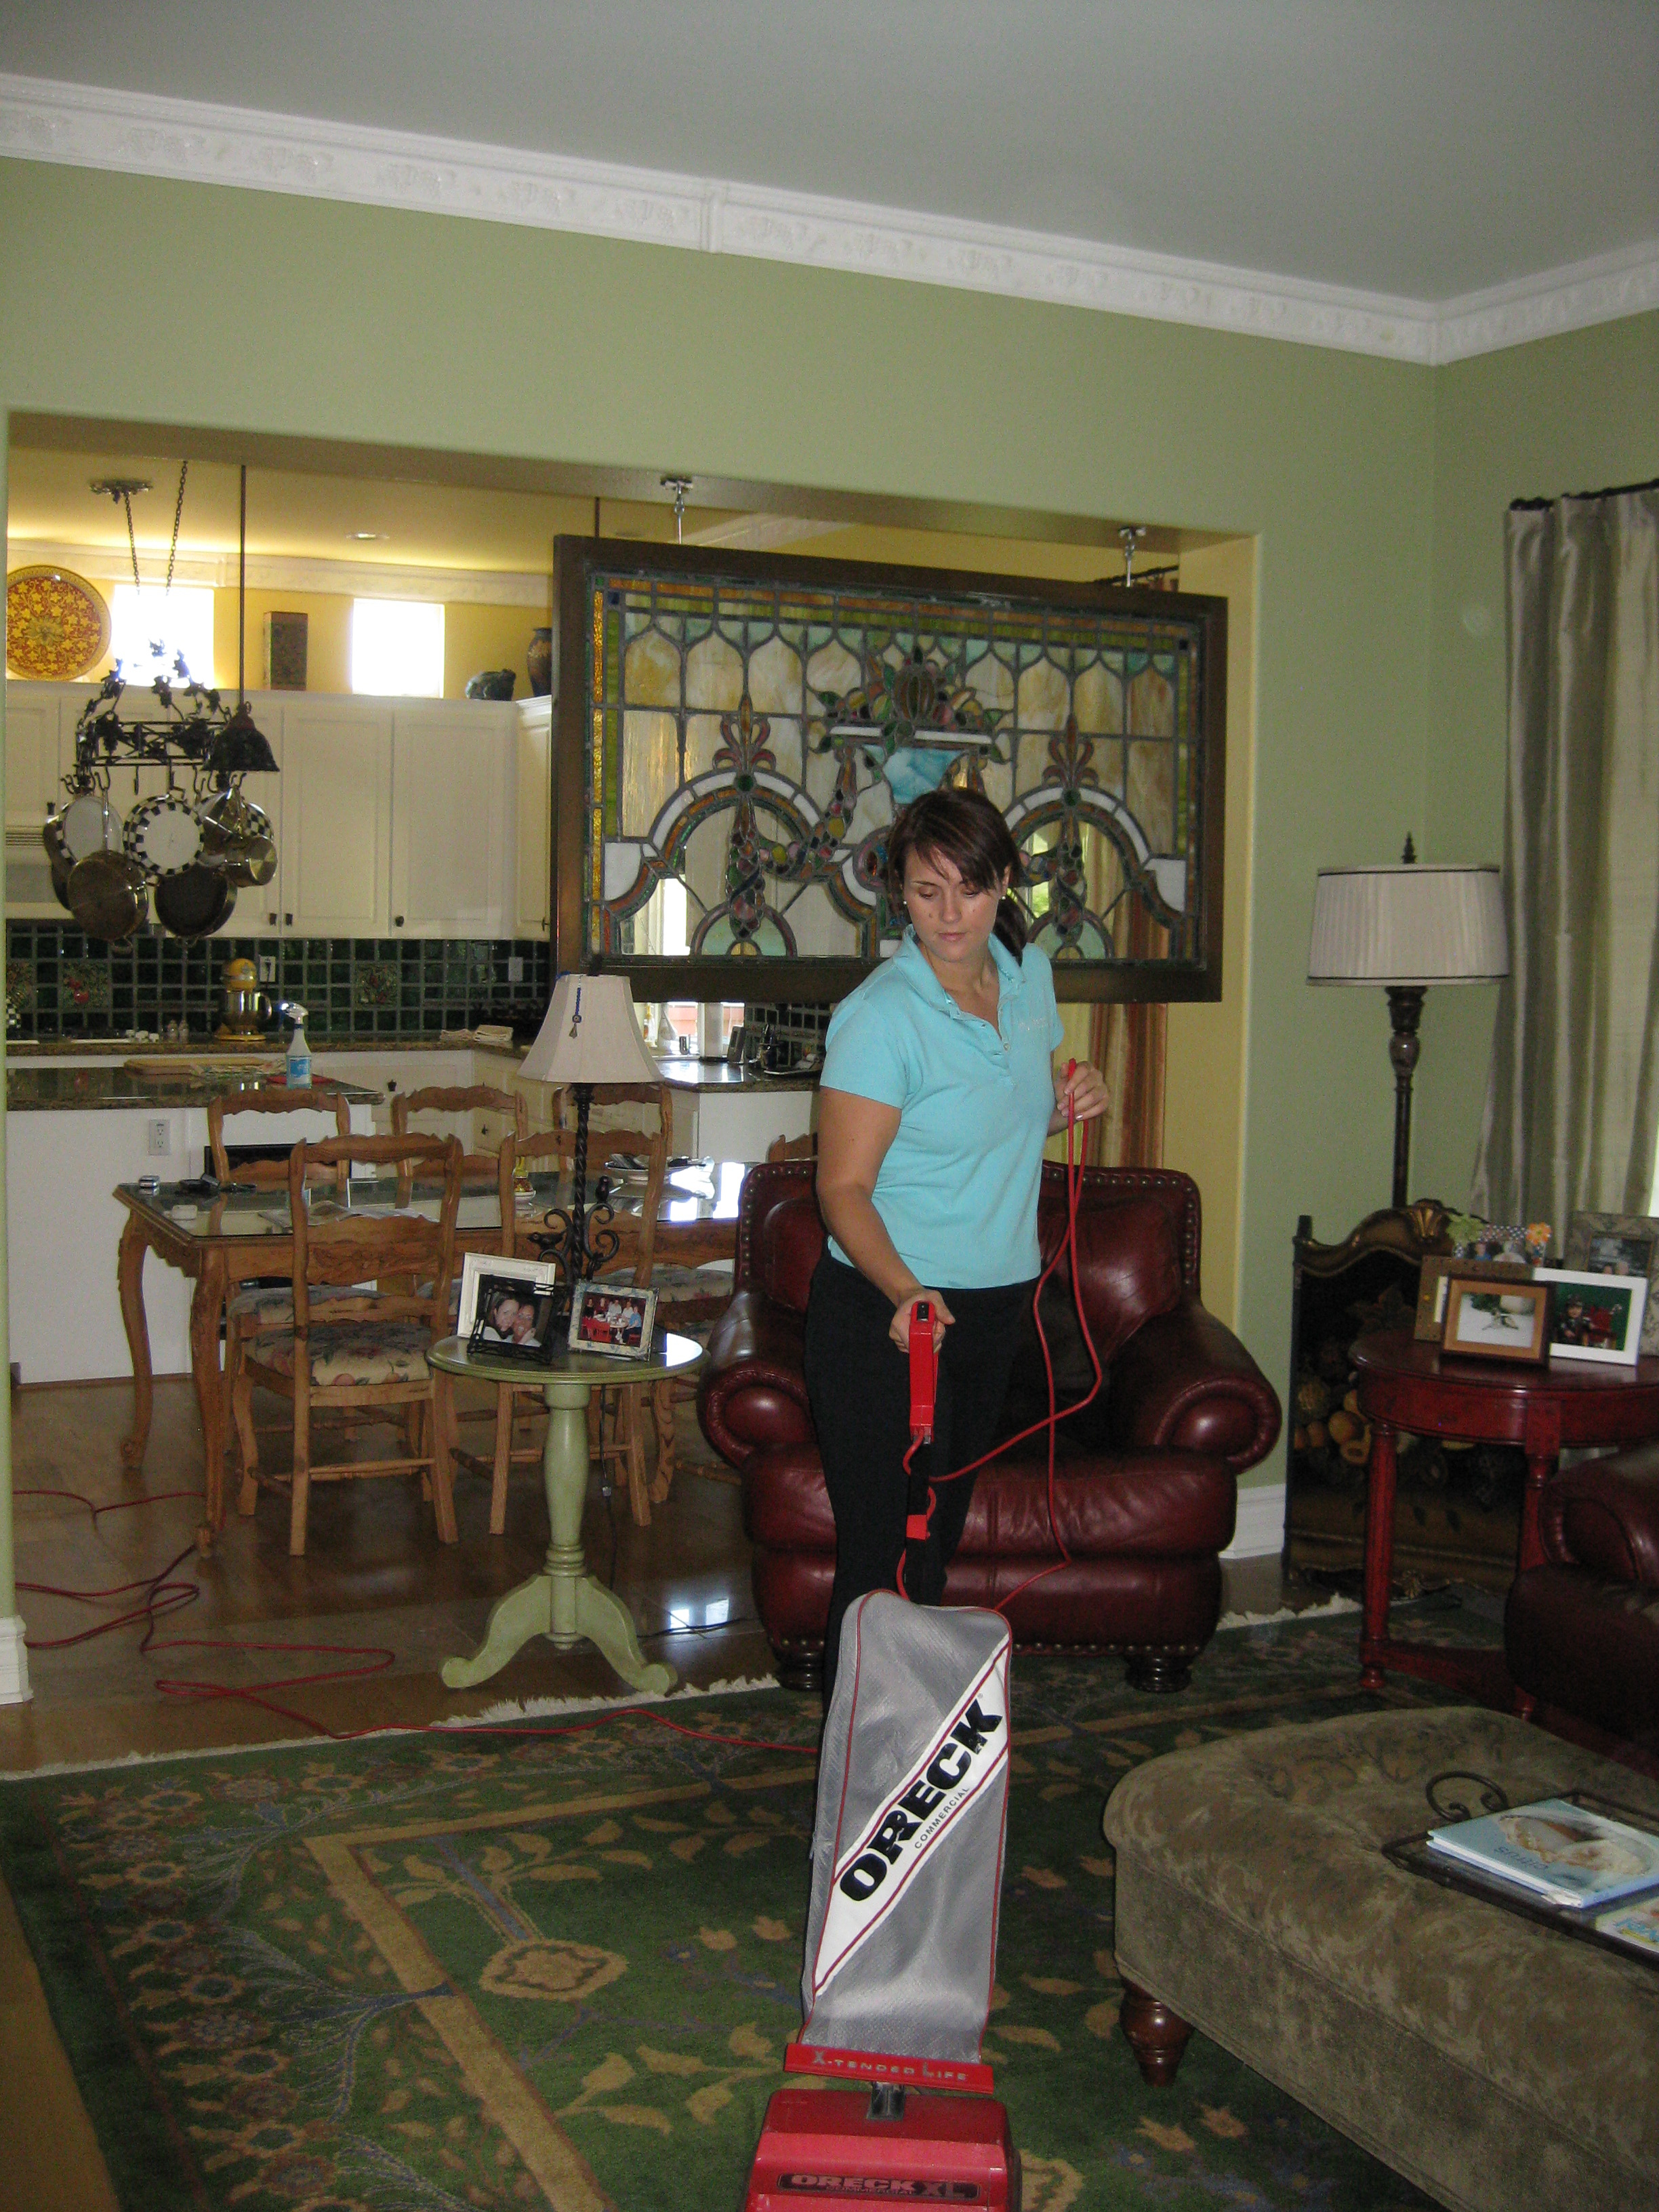 My Maids House Cleaning Service image 3